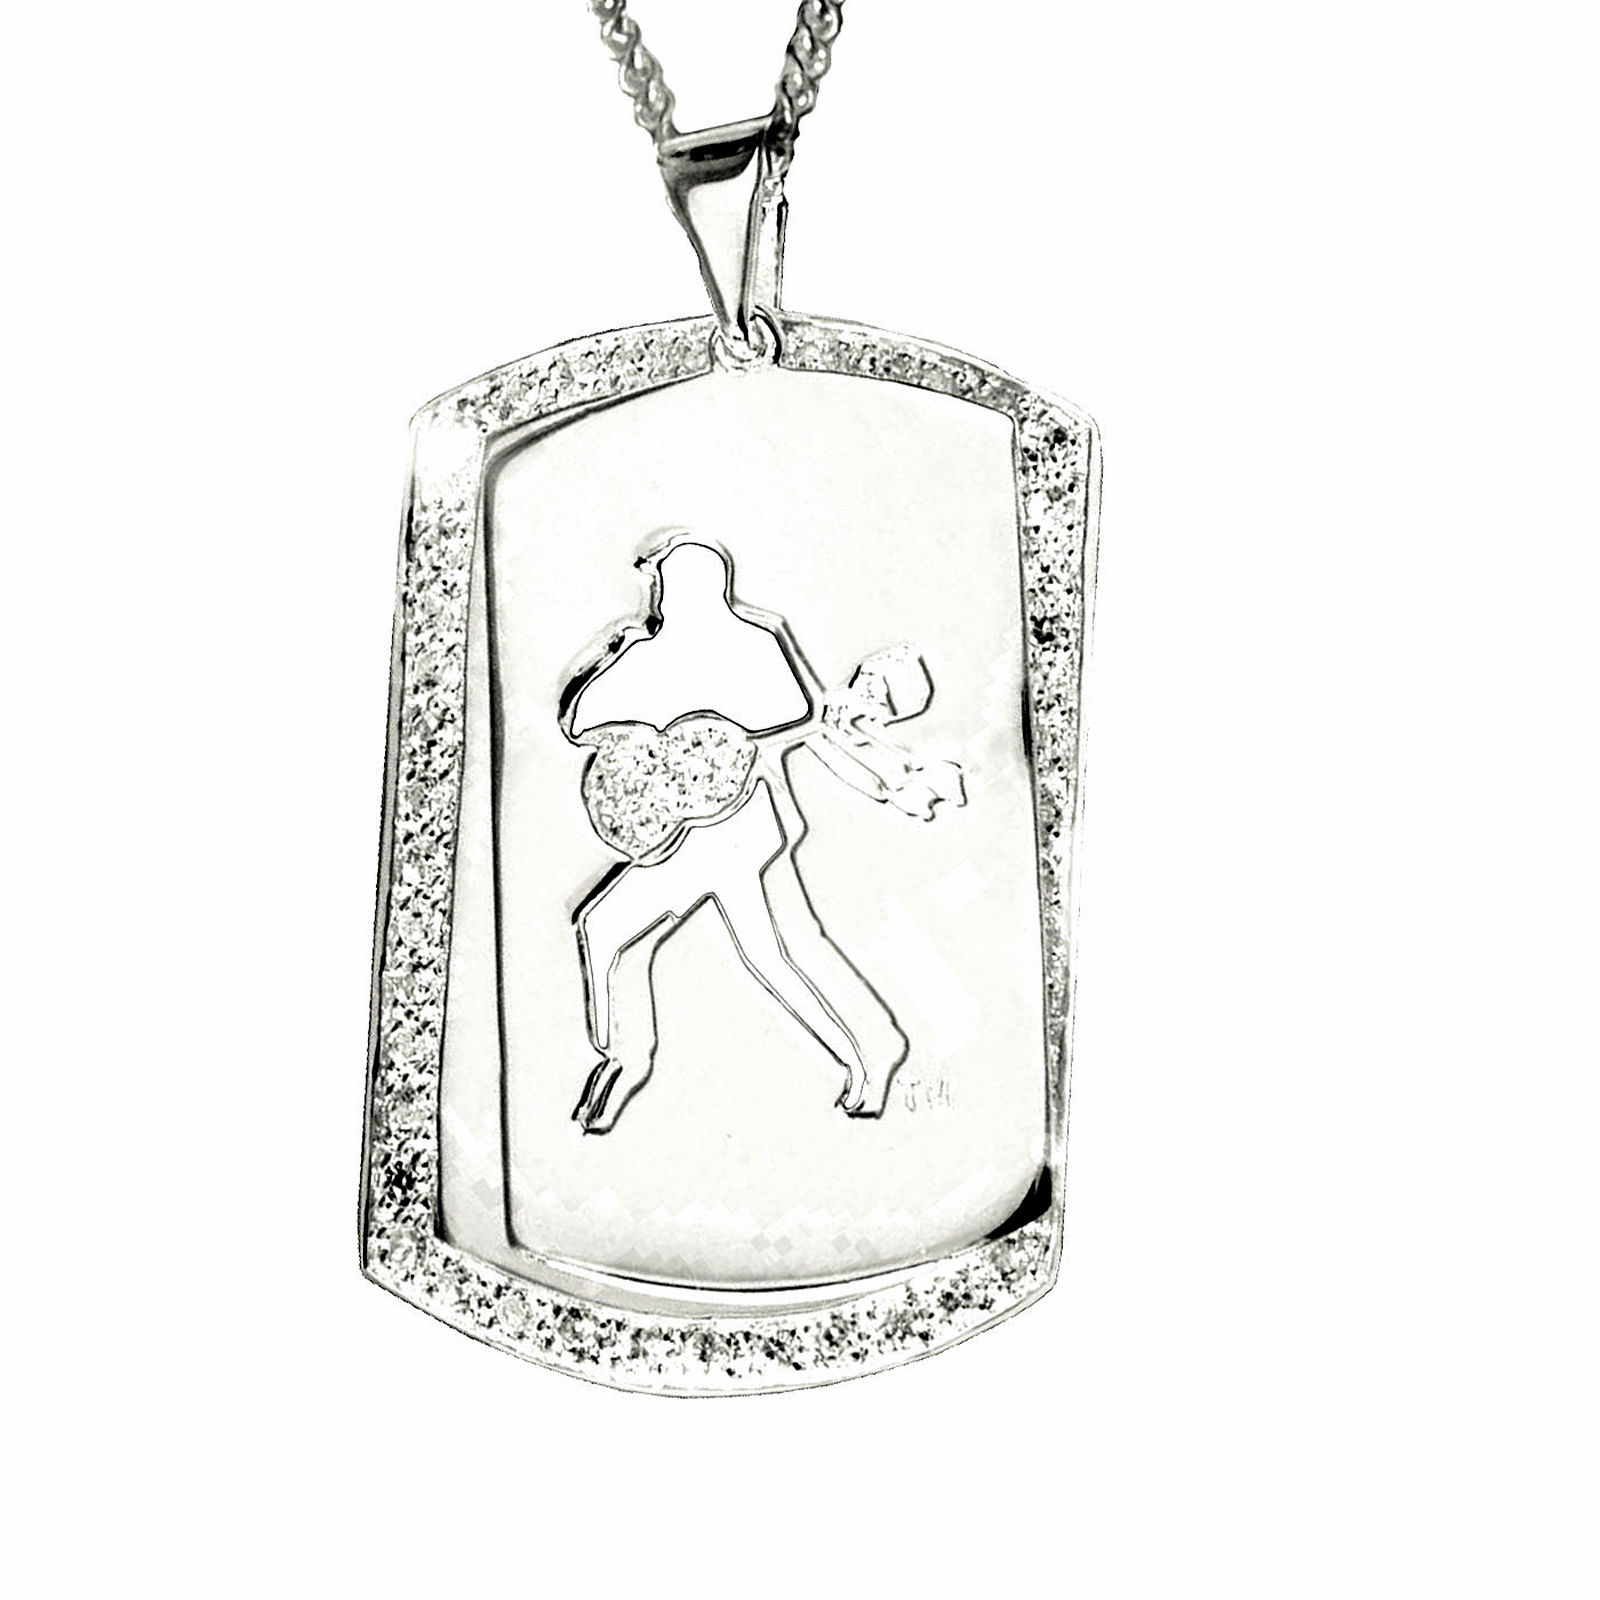 jewlery of dog mississippi miss necklace rebels women silver tag large ole products university gold pendant zokee accessories men